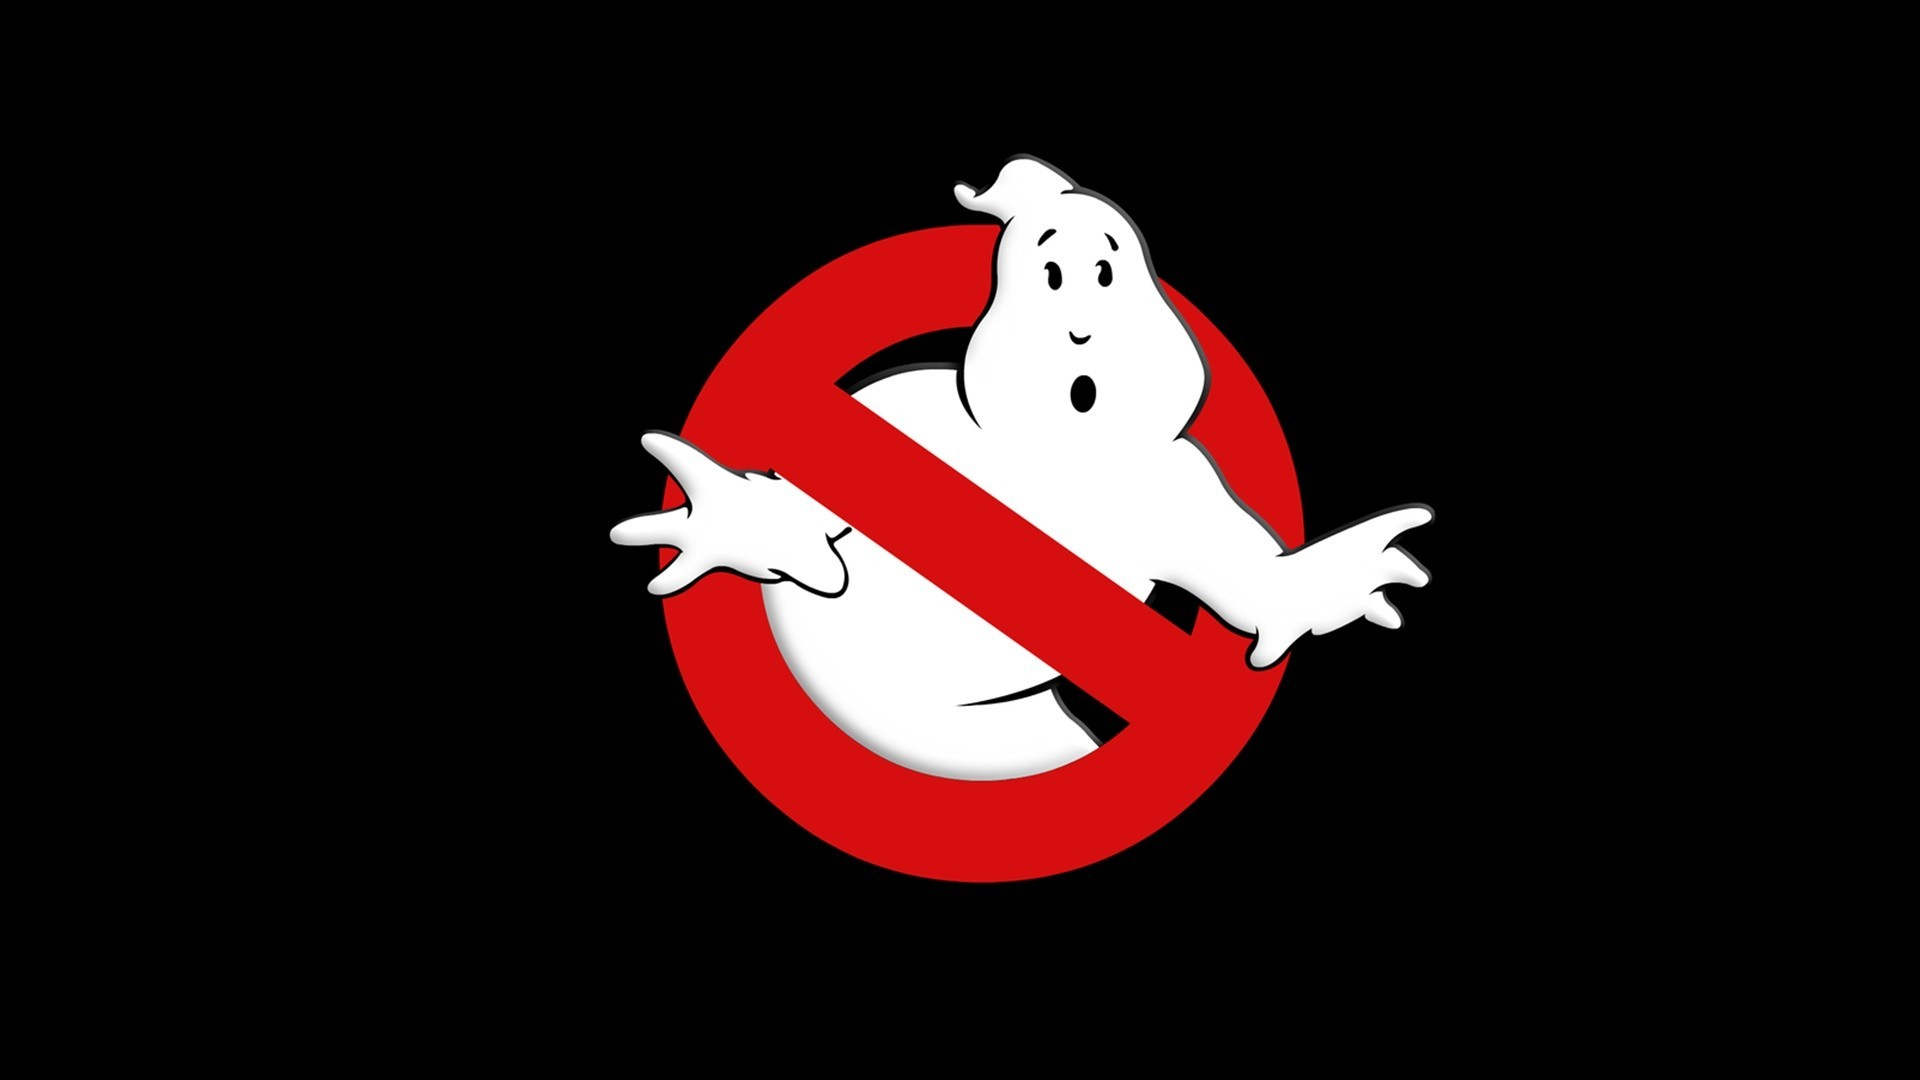 Ghostbusters 2016 hd movies 4k wallpapers images - Ghostbusters wallpaper ...